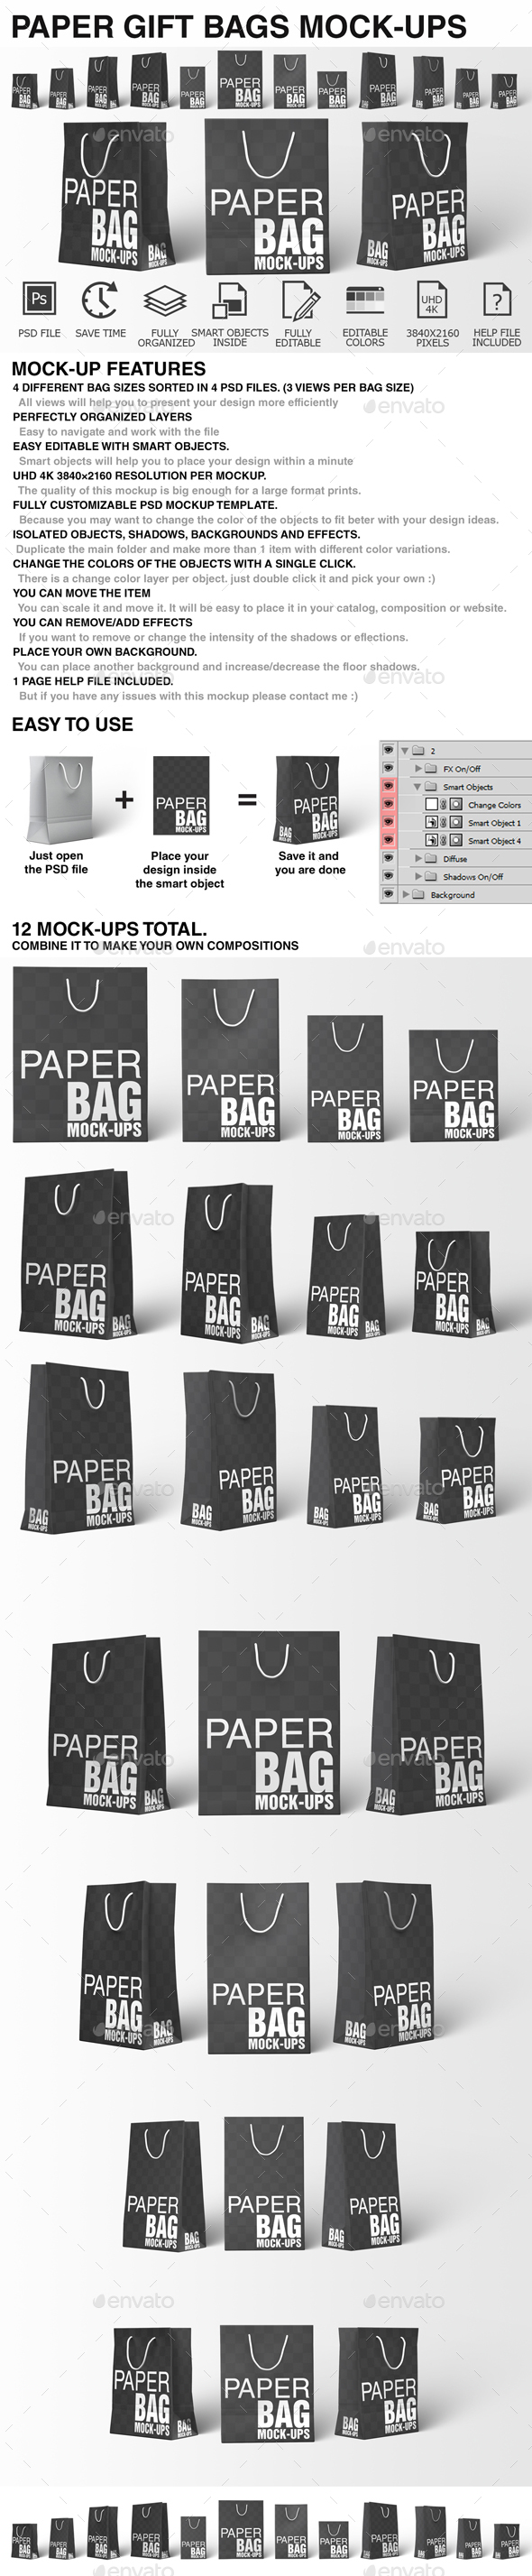 Paper Bag Mockups - Paper Shopping Gift Bag Mockup - Miscellaneous Packaging